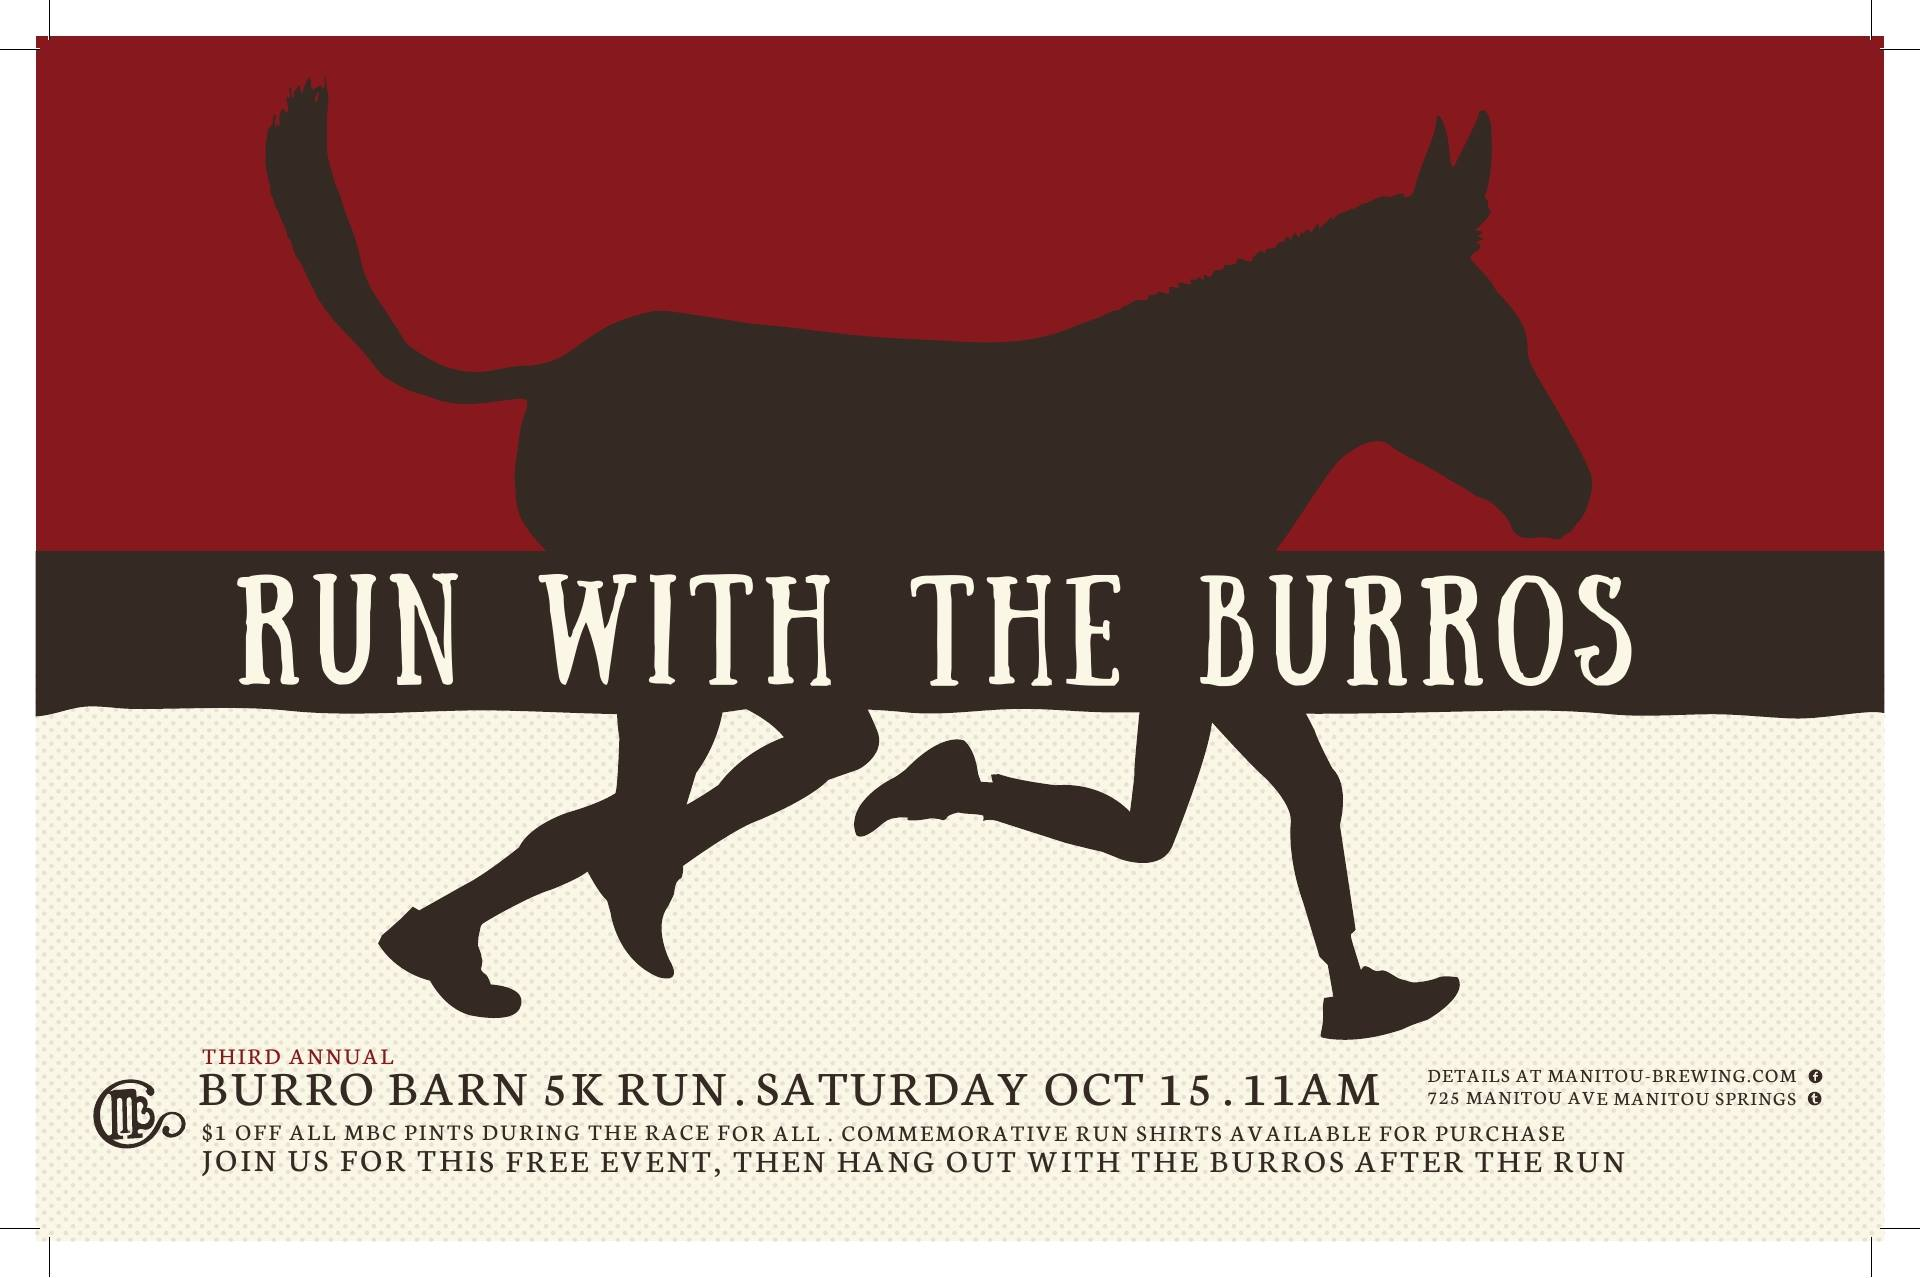 Run with the Burros, Manitou Springs, Rocky Mountain Food Report, Colorado Springs, food news, Pikes Peak Region